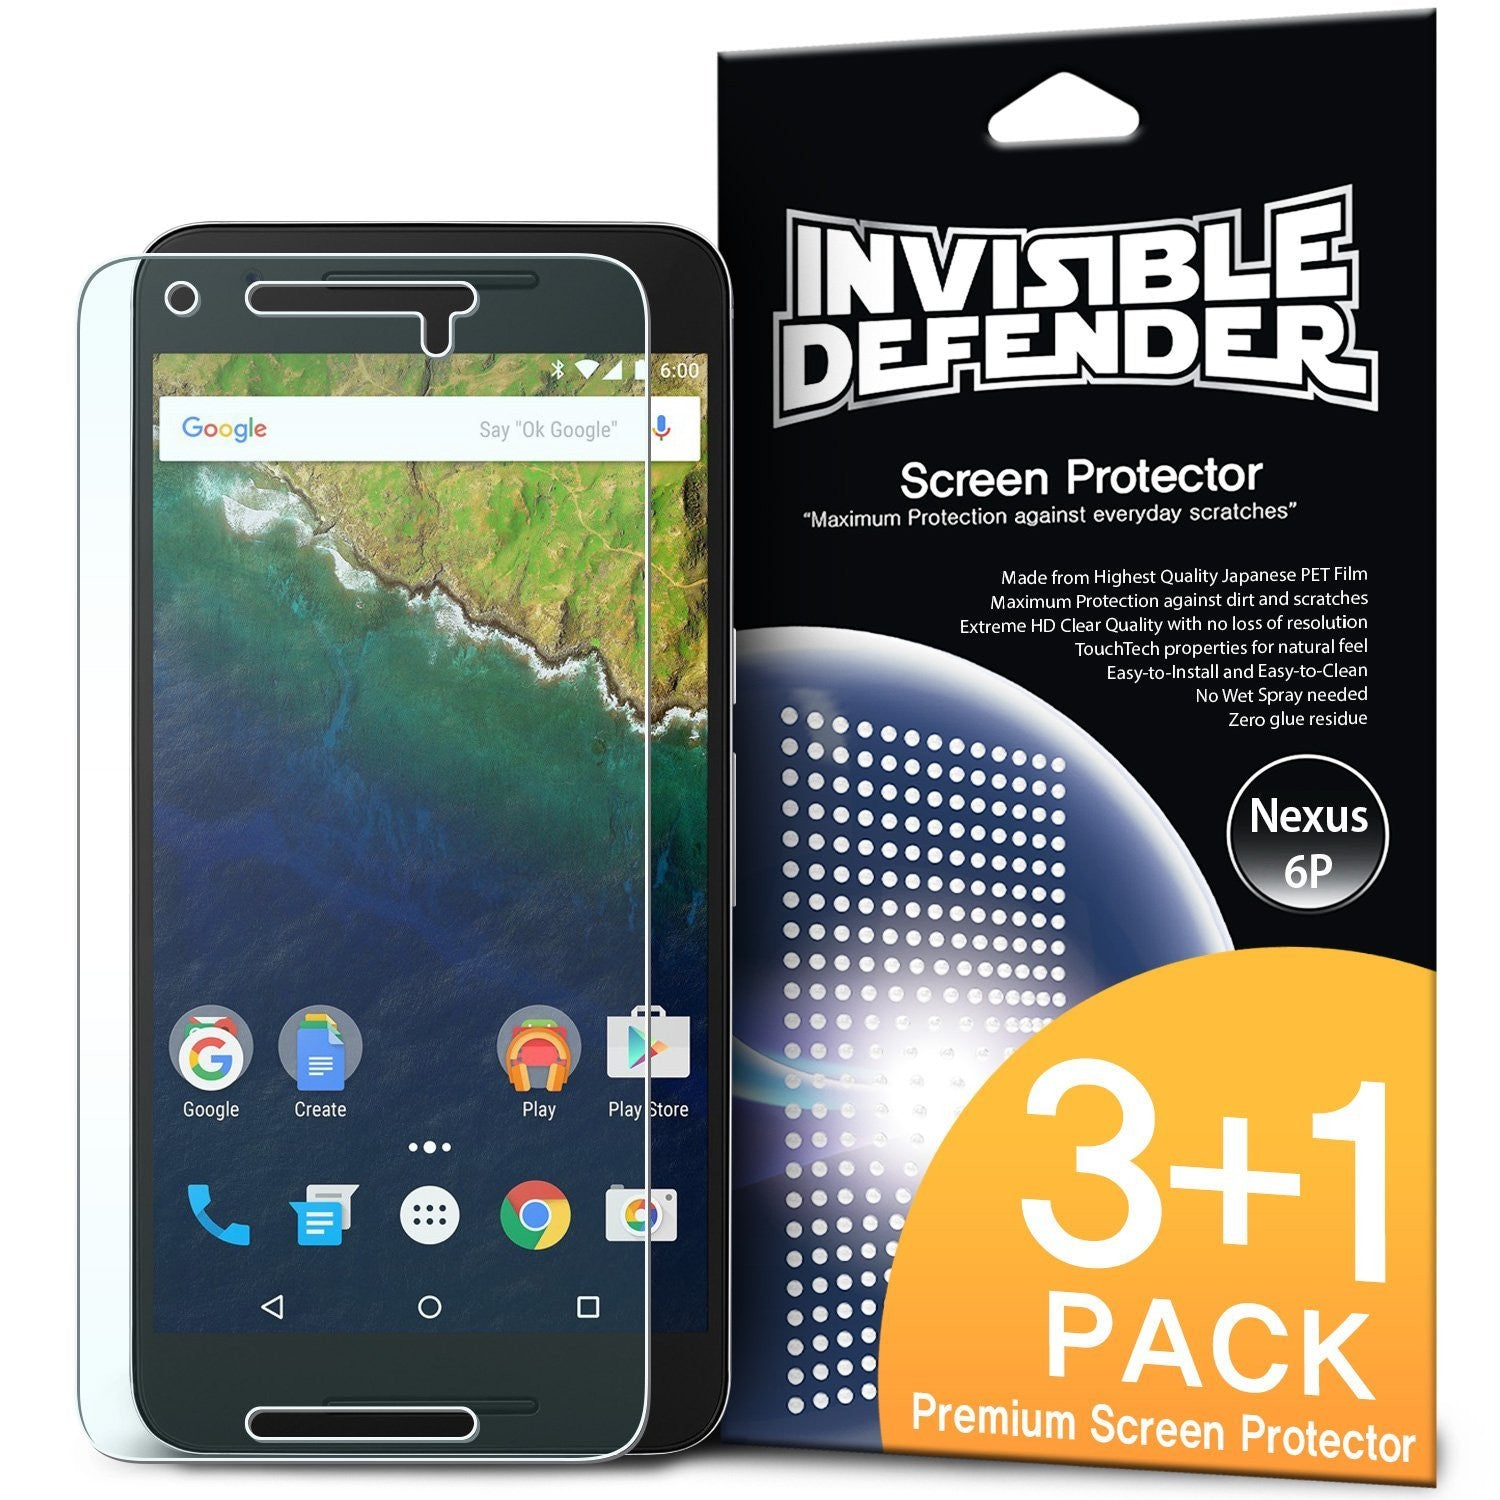 ringke invisible defender film screen protector for google nexus 6p main